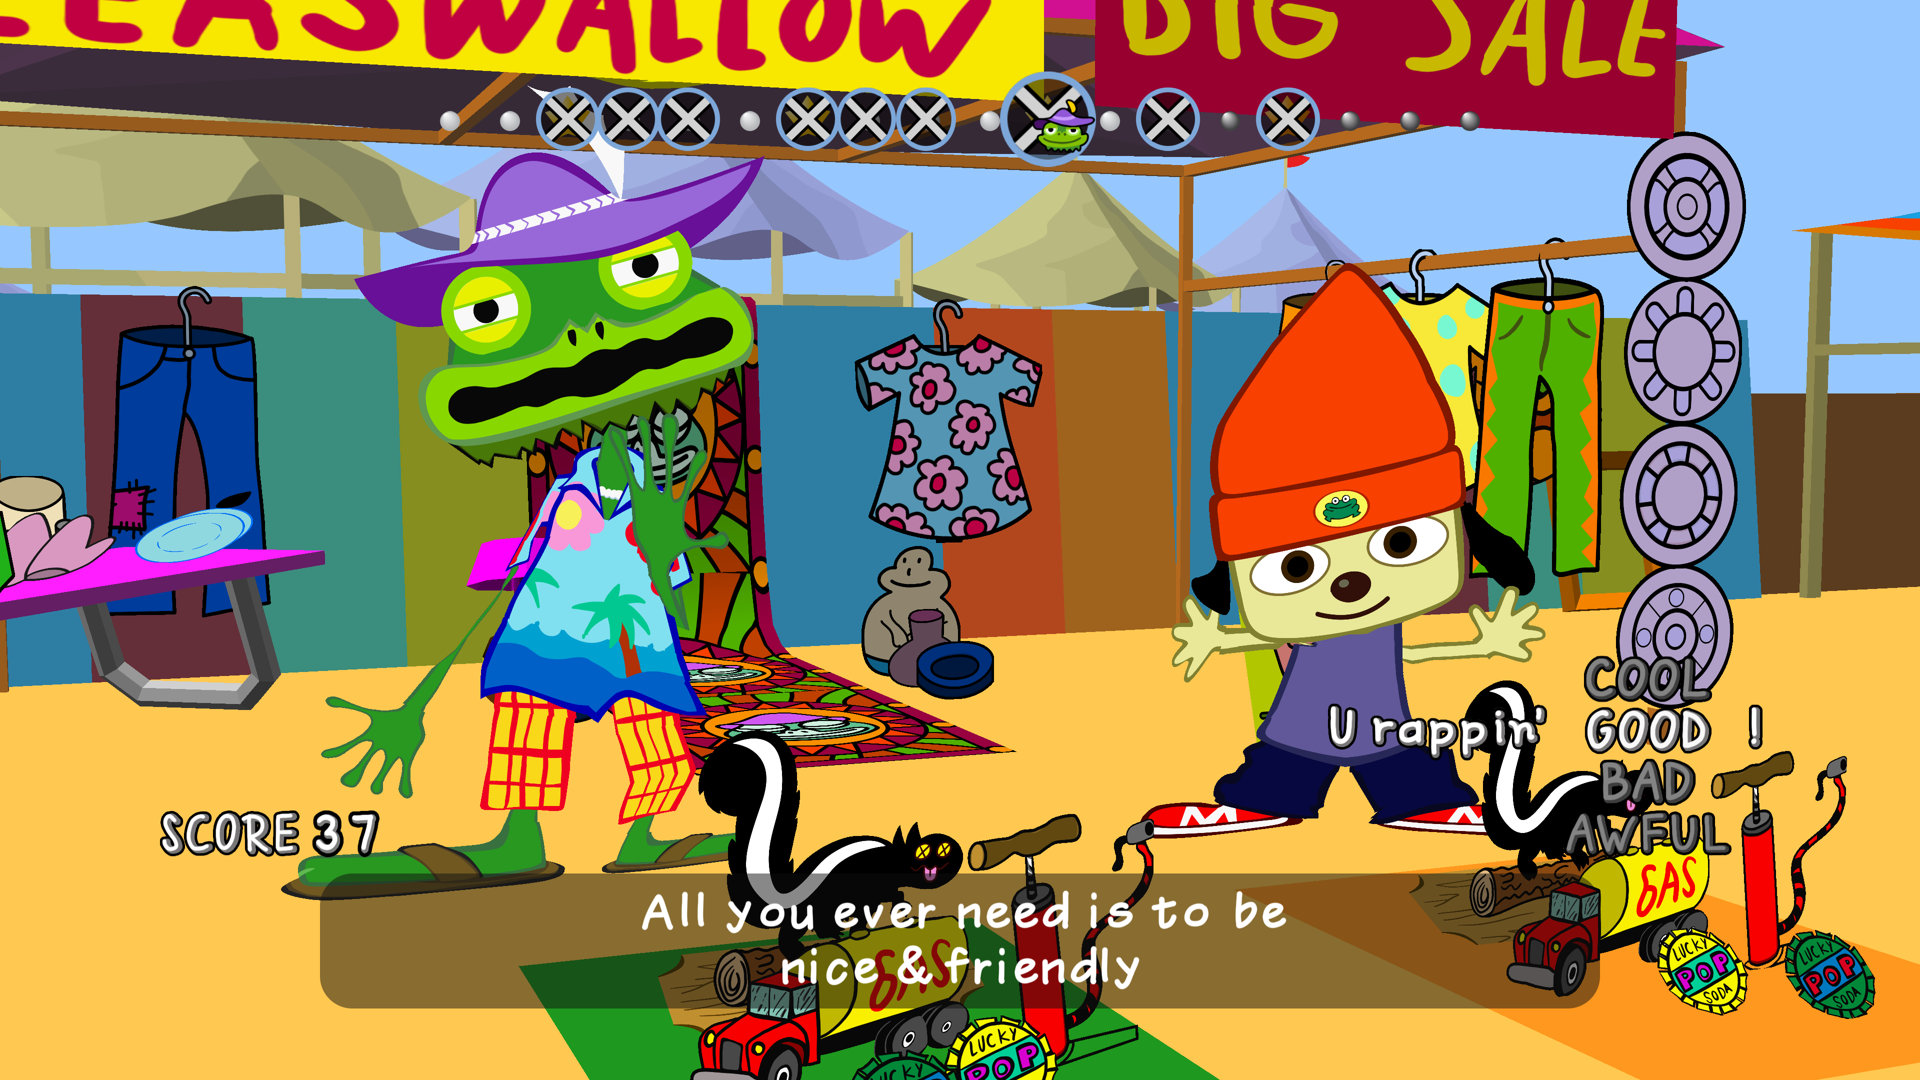 Psp parappa the rapper